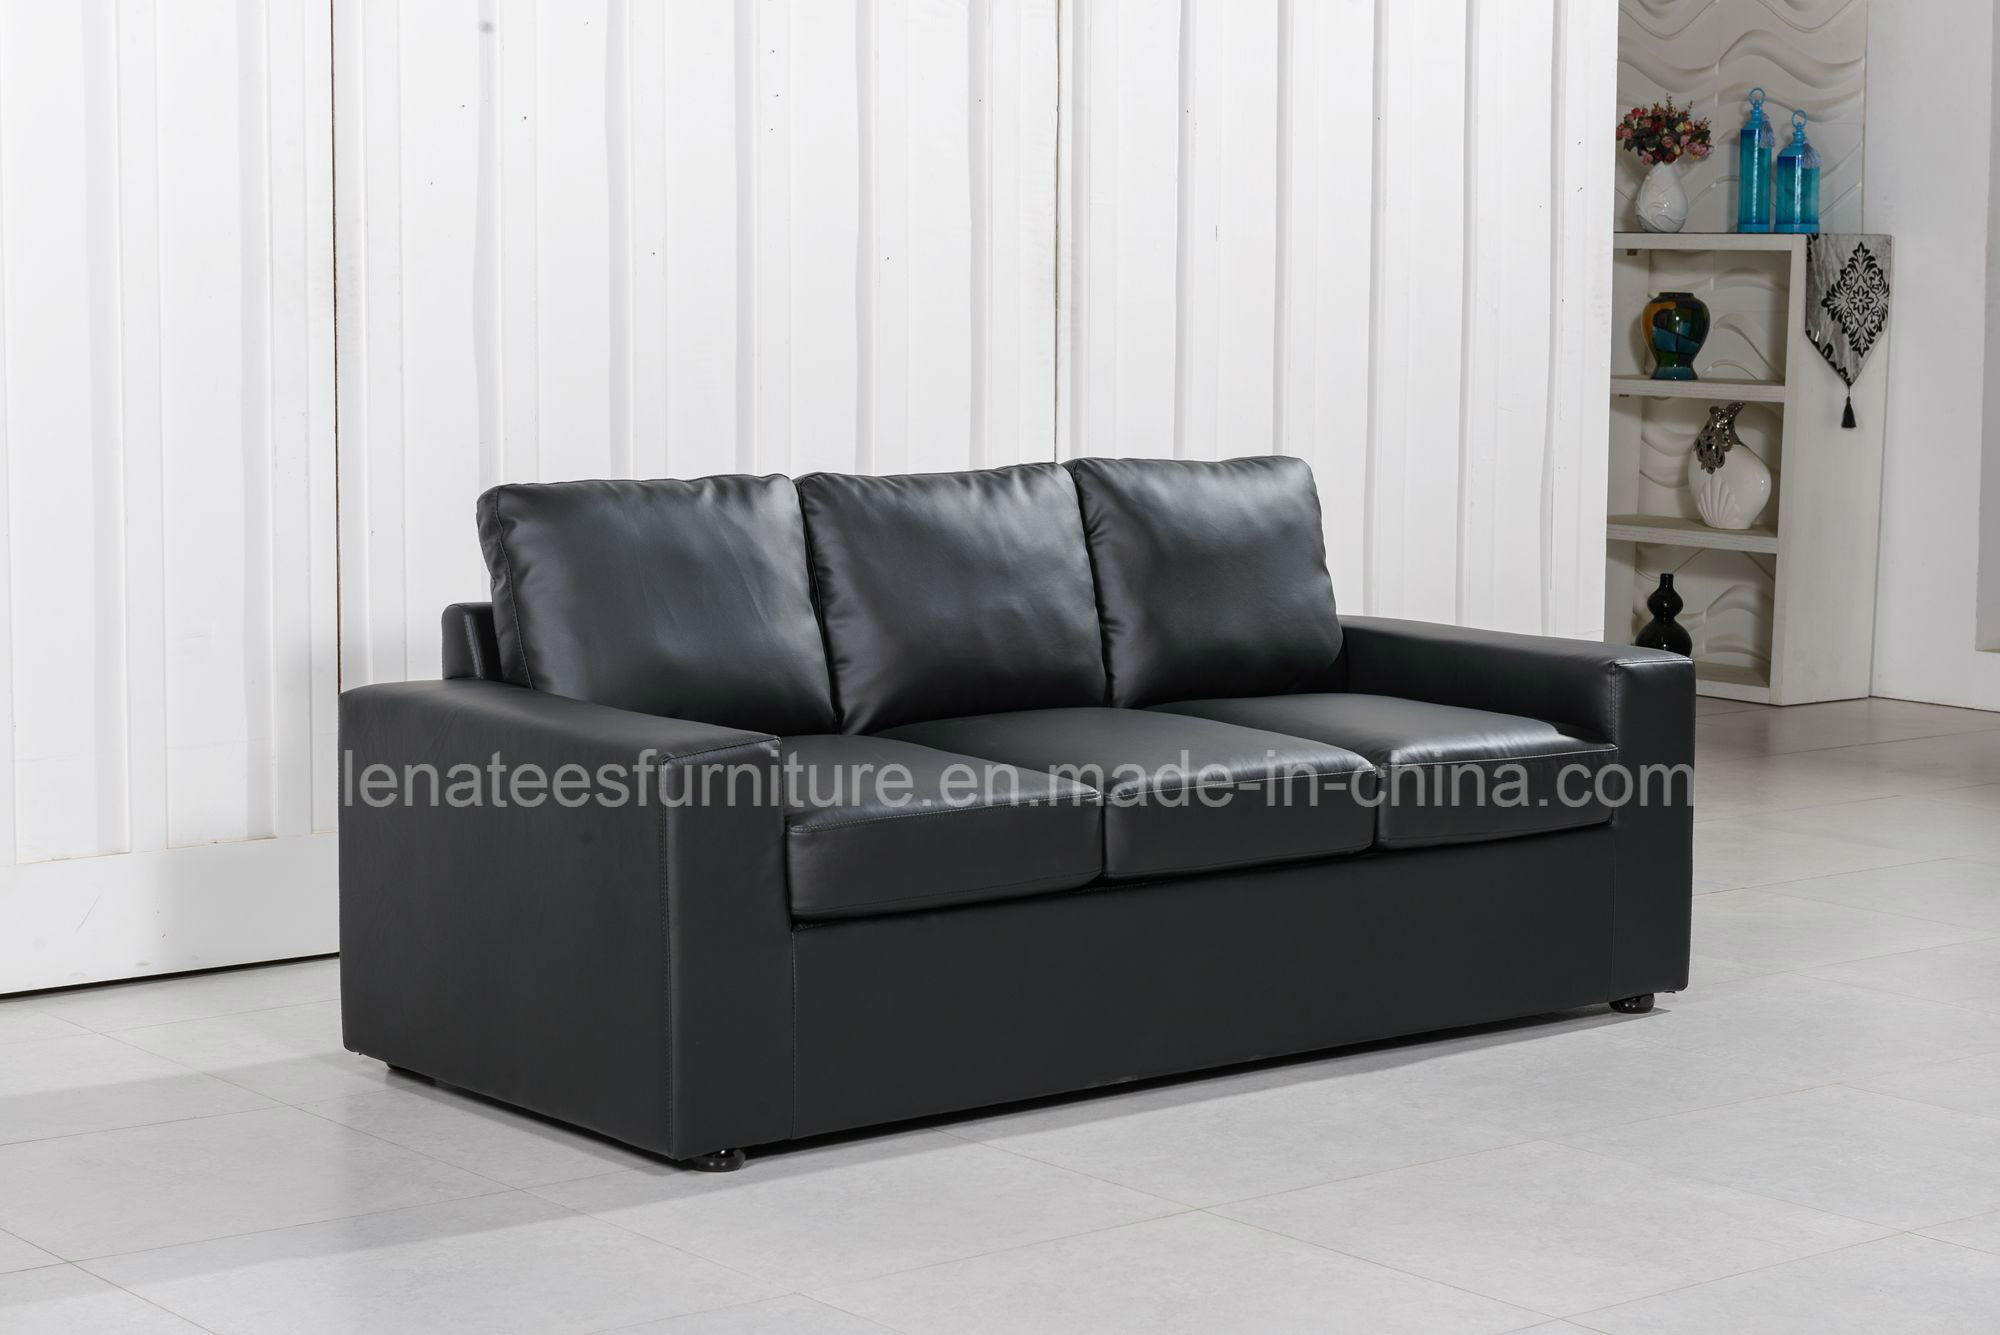 Lk-9103 Hotel Room Living Room Leather Sofa Bed with Mattress